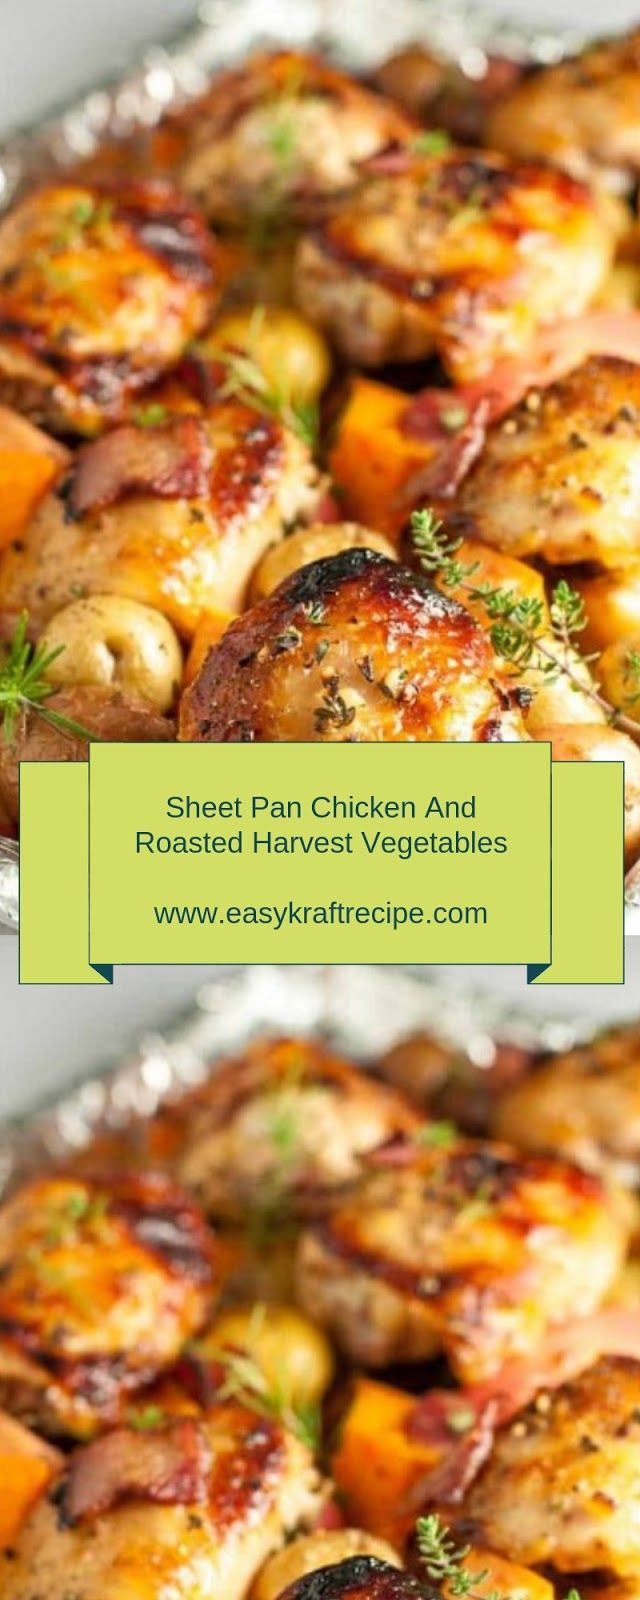 Sheet Pan Chicken And Roasted Harvest Vegetables Christmas Lunch